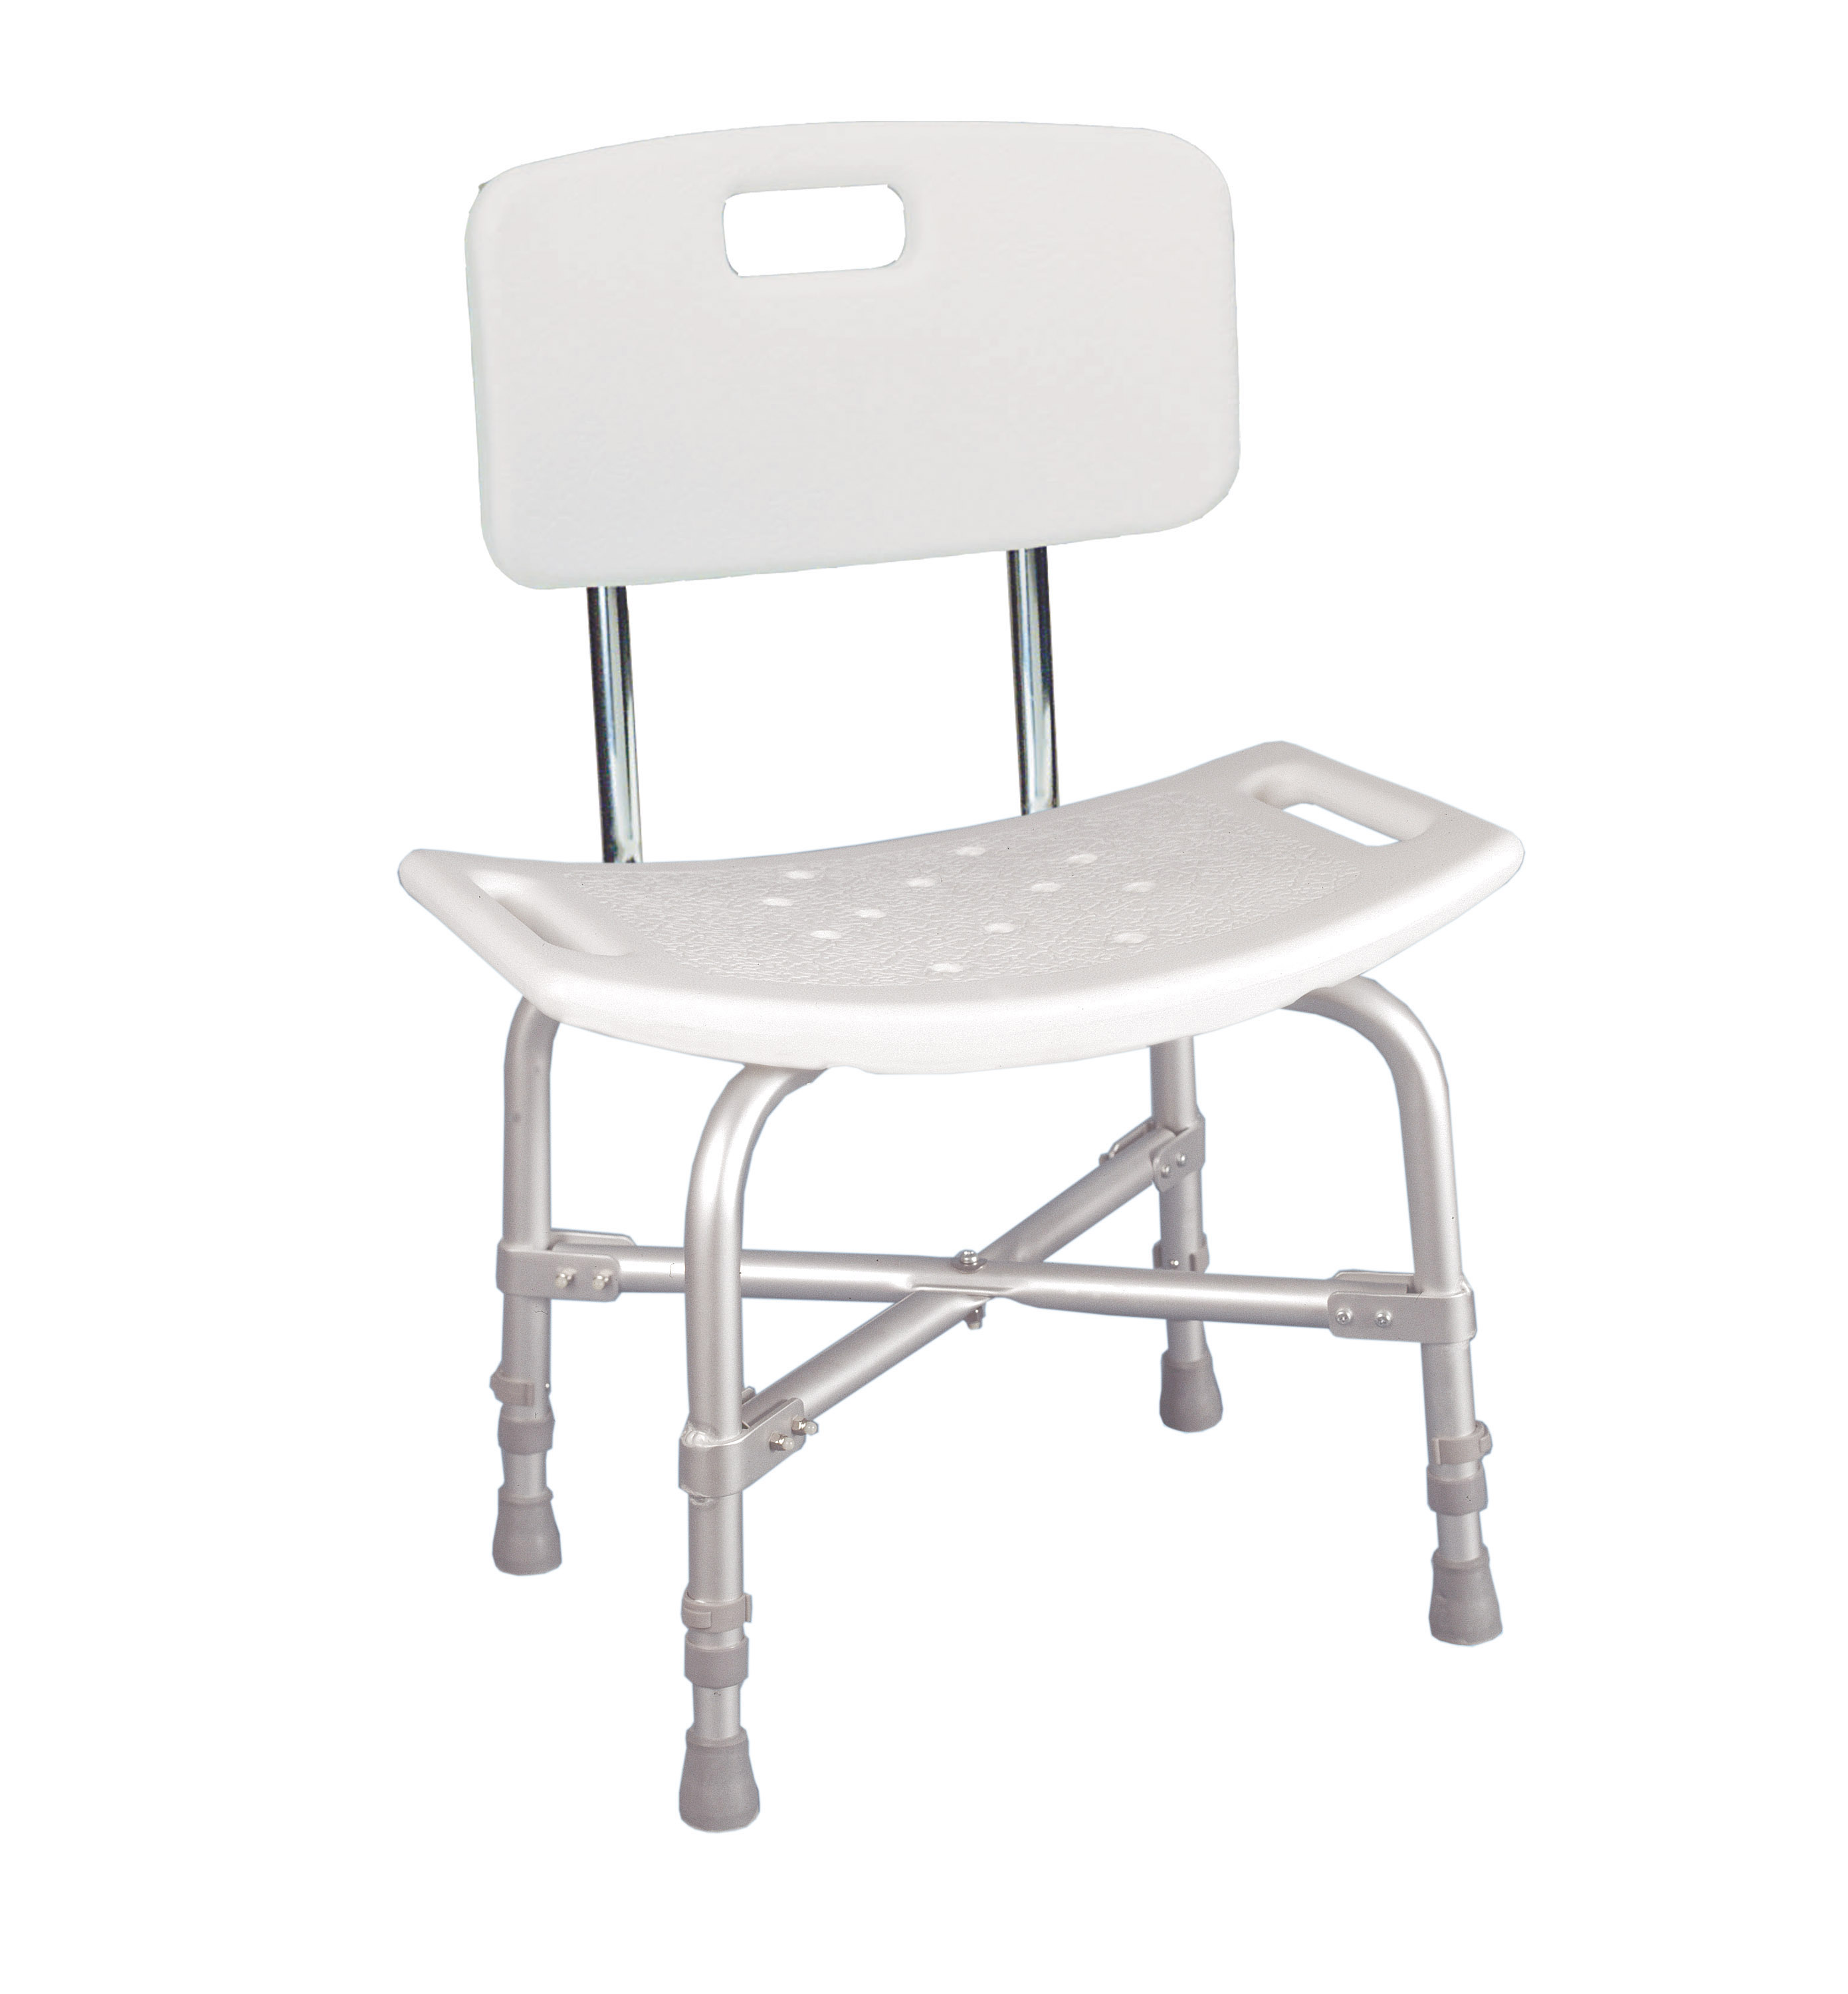 shower chair; chair for showers; shower chairs; medical shower chair; bath chair; shower seat; shower bench; bath bench; shower bench; bath seat; bariatric; heavy duty bench; bariatric bath bench